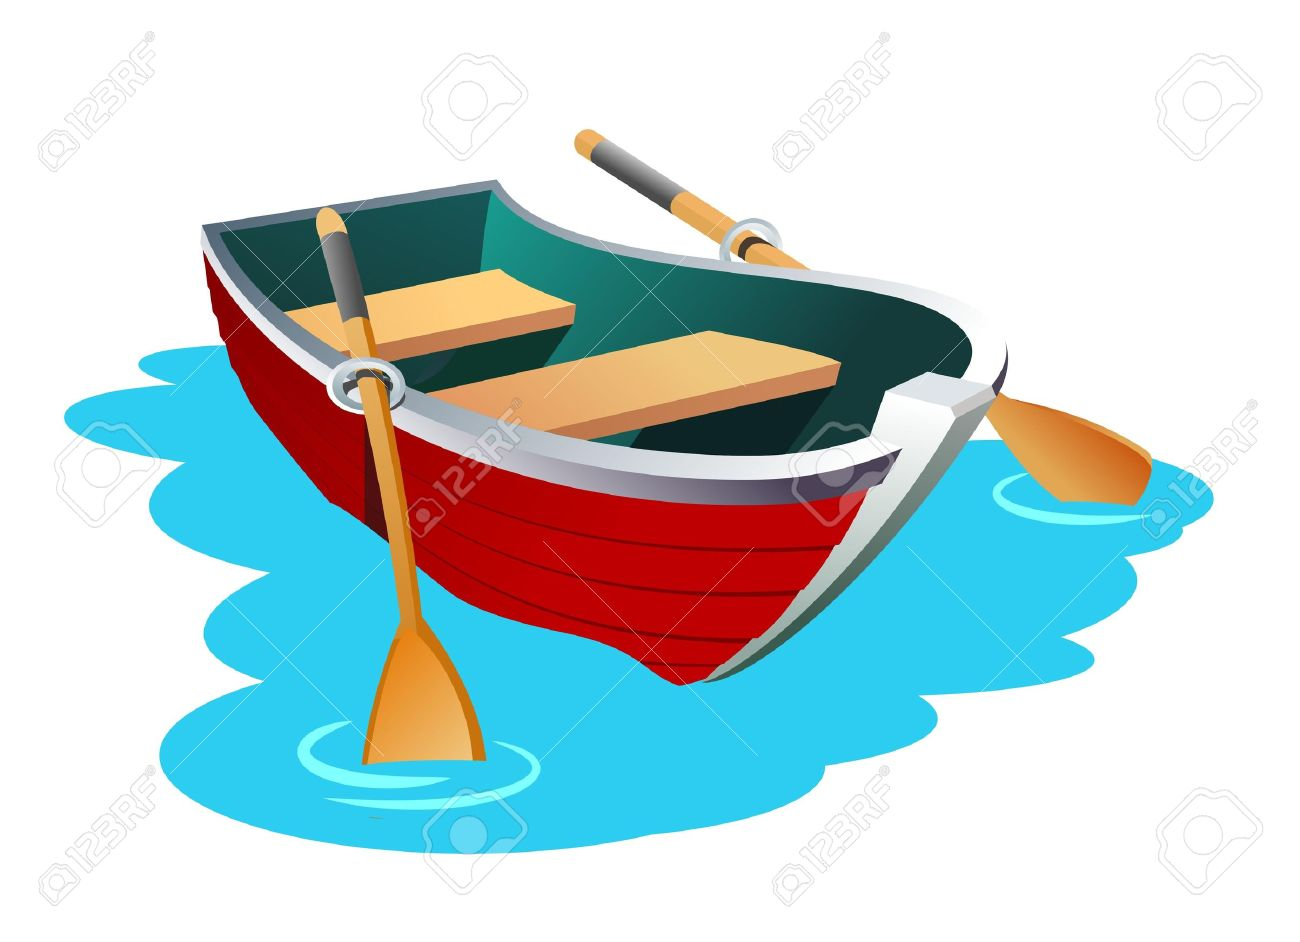 Clipart rowing boat clipart royalty free Rowing Boat Clipart | Free download best Rowing Boat Clipart on ... clipart royalty free